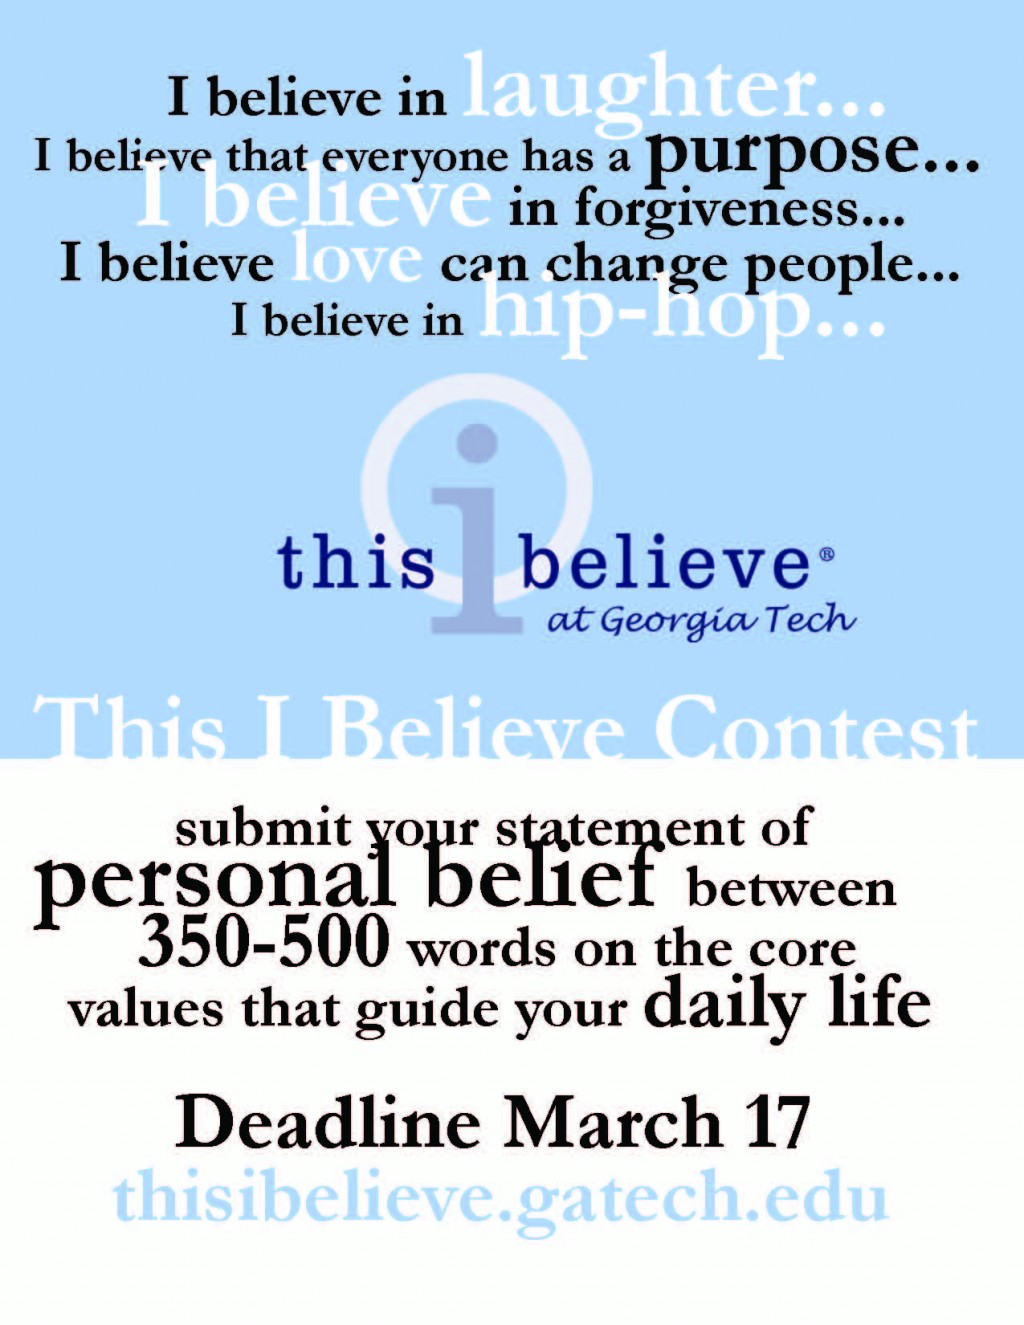 022 This I Believe Essay Topics Example Thisibelieve8 Fearsome Prompt Easy Funny Large